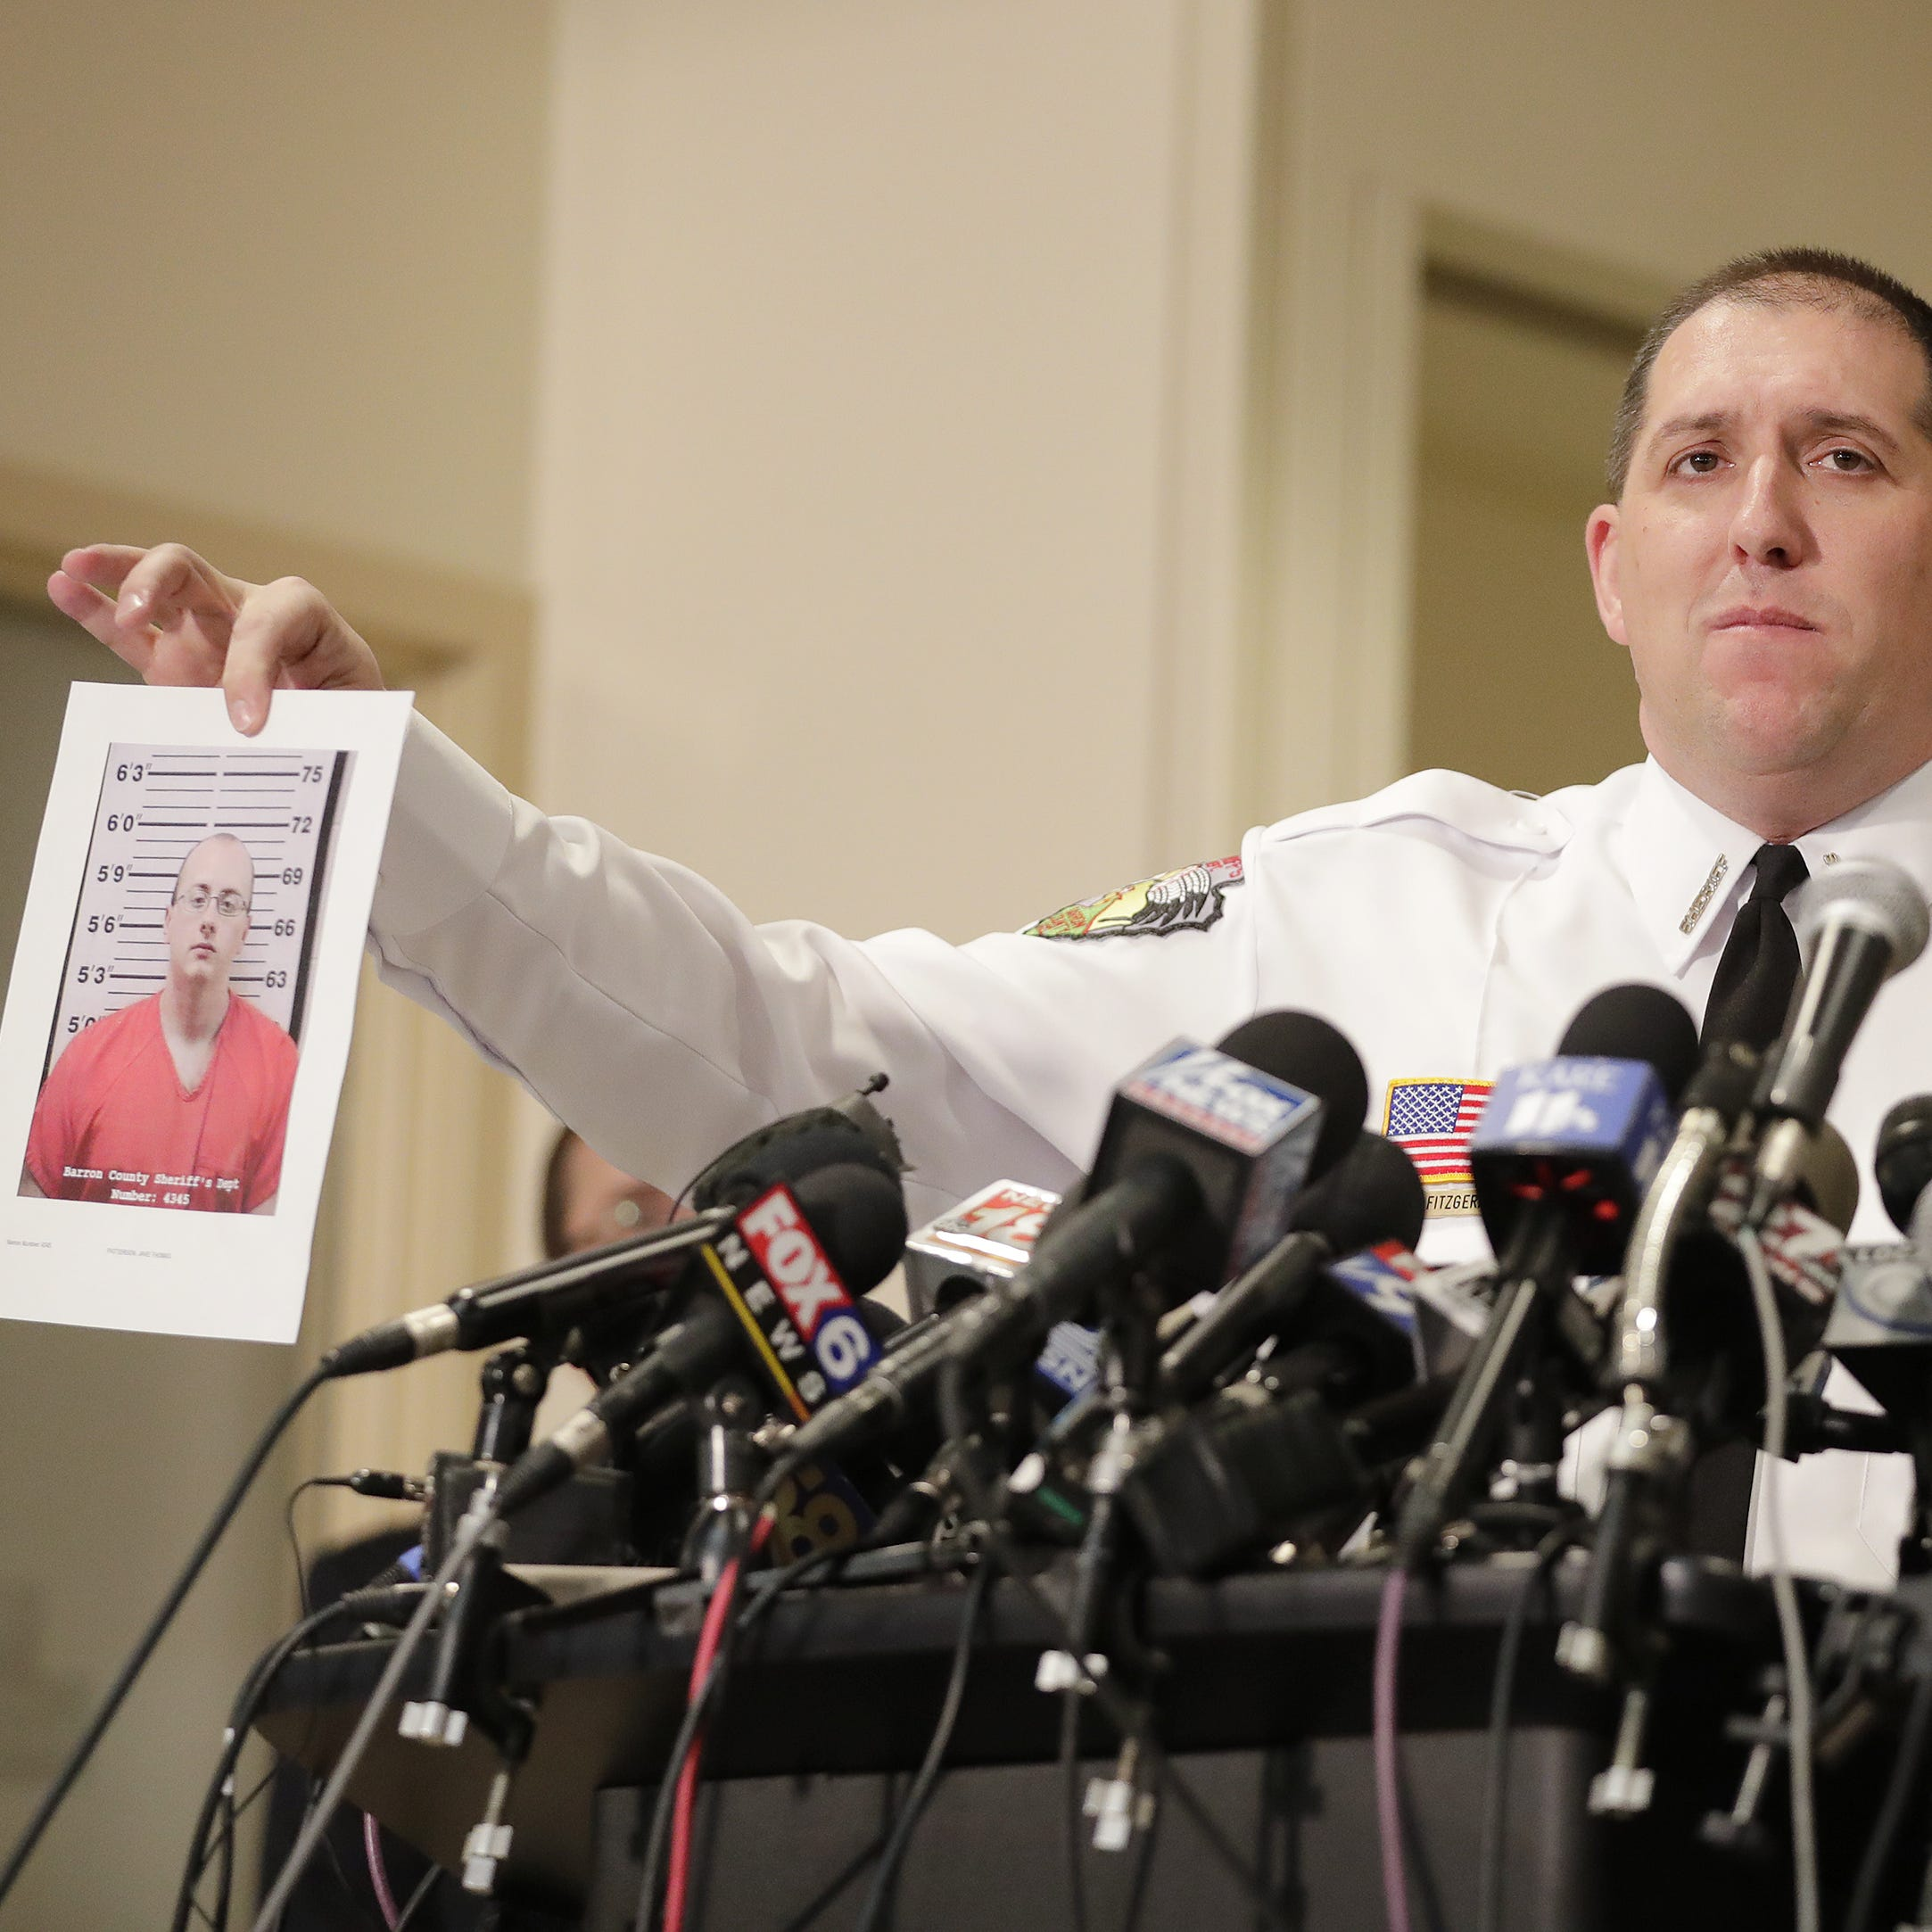 Barron County Sheriff Chris Fitzgerald holds up a photo of the suspect in custody in the kidnapping of Jayme Closs, 13, during a news conference at the Sheriff's Department on Friday.  Jayme was found near the Town of Gordon in northern Wisconsin on Thursday. She  had been missing since Oct. 15, the same day her parents, James, 56, and Denise, 46, were found shot to death in their home outside Barron.